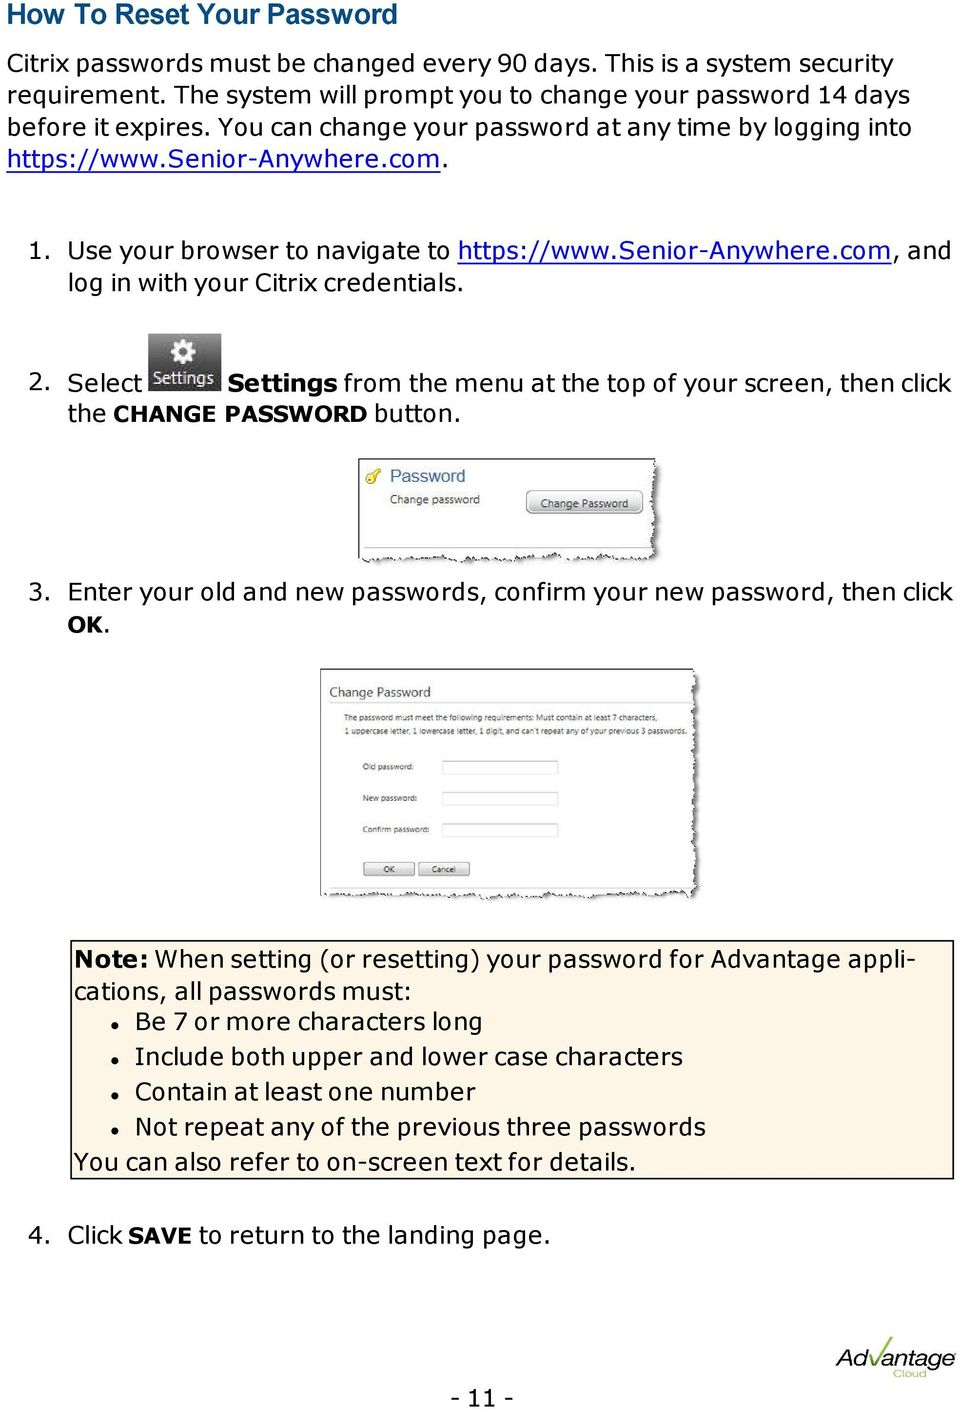 2. Select Settings from the menu at the top of your screen, then click the CHANGE PASSWORD button. 3. Enter your old and new passwords, confirm your new password, then click OK.